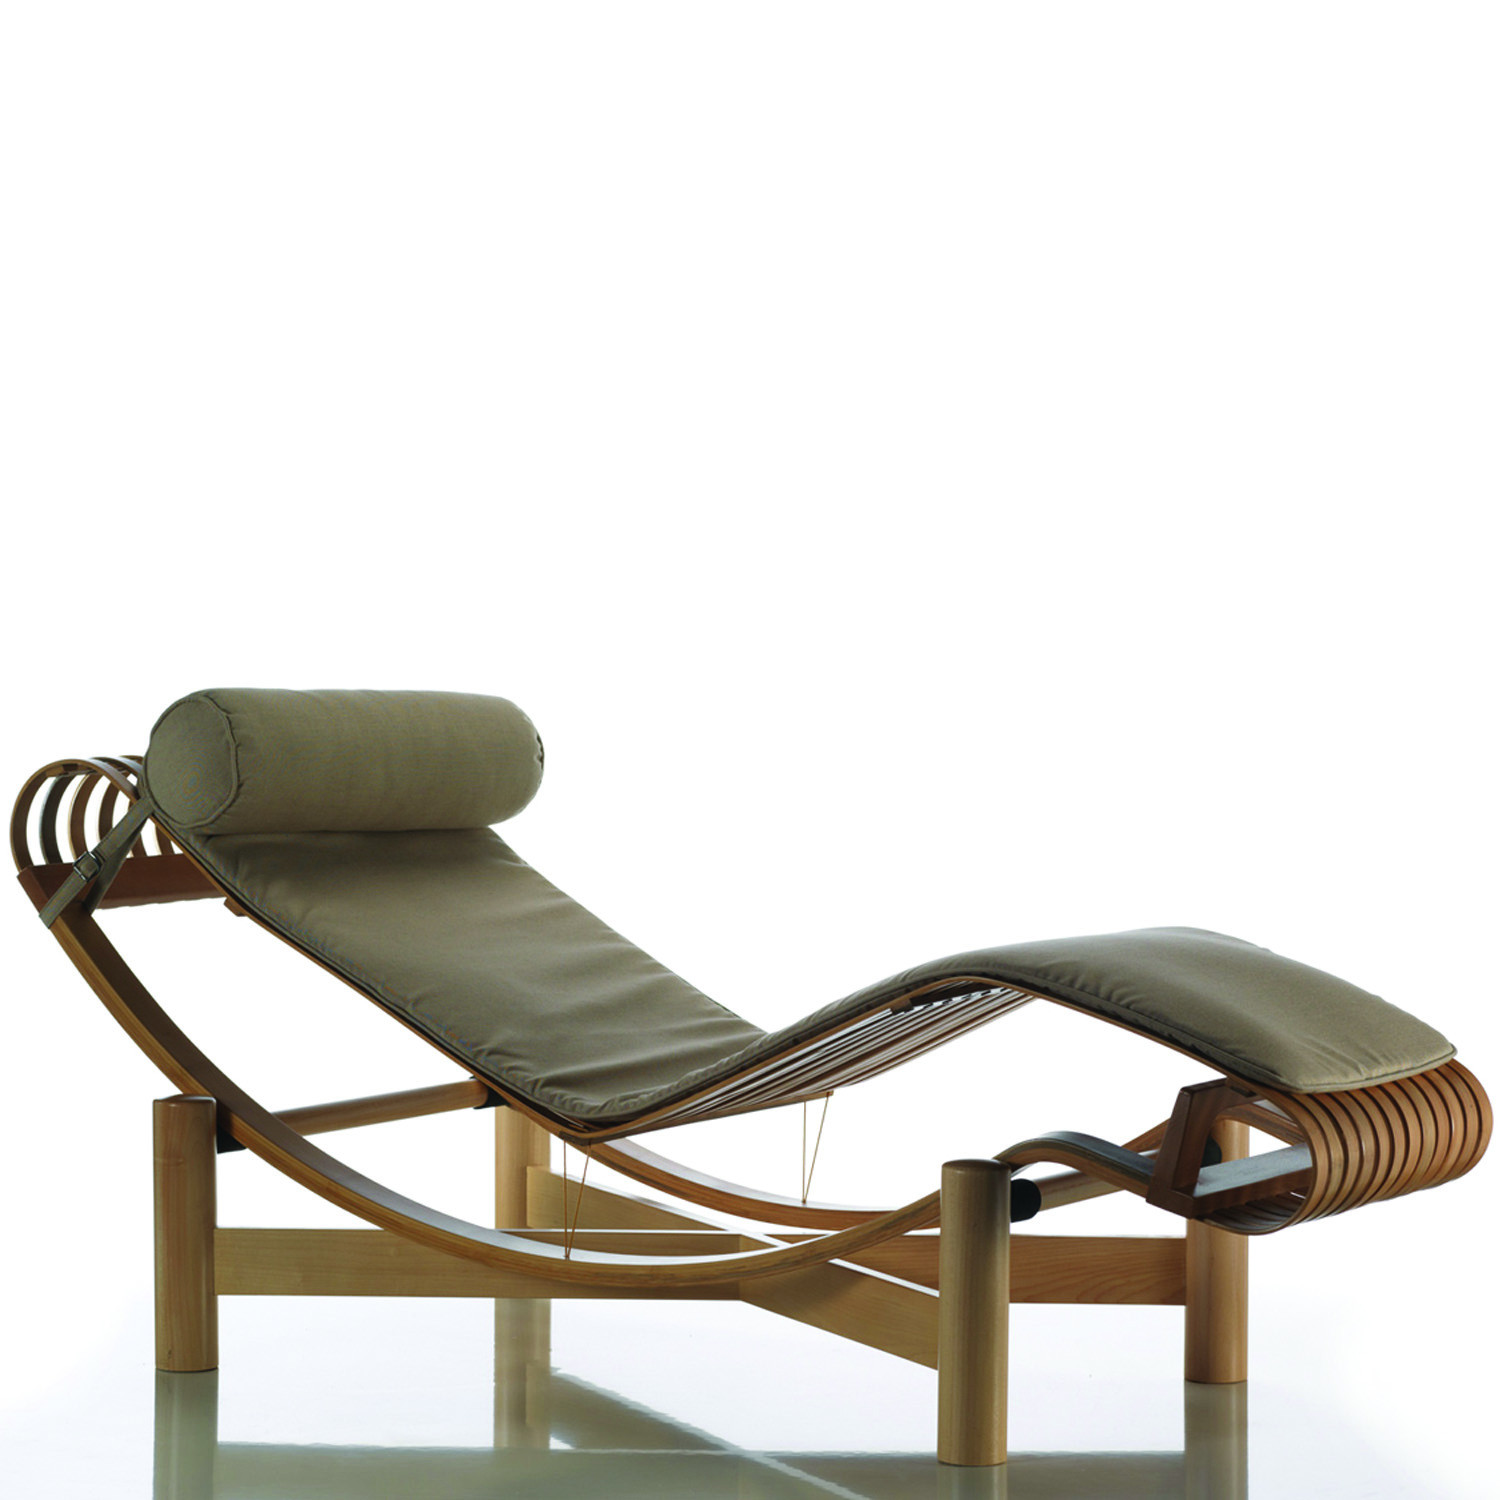 522 Tokyo Chaise Longue By Cassina